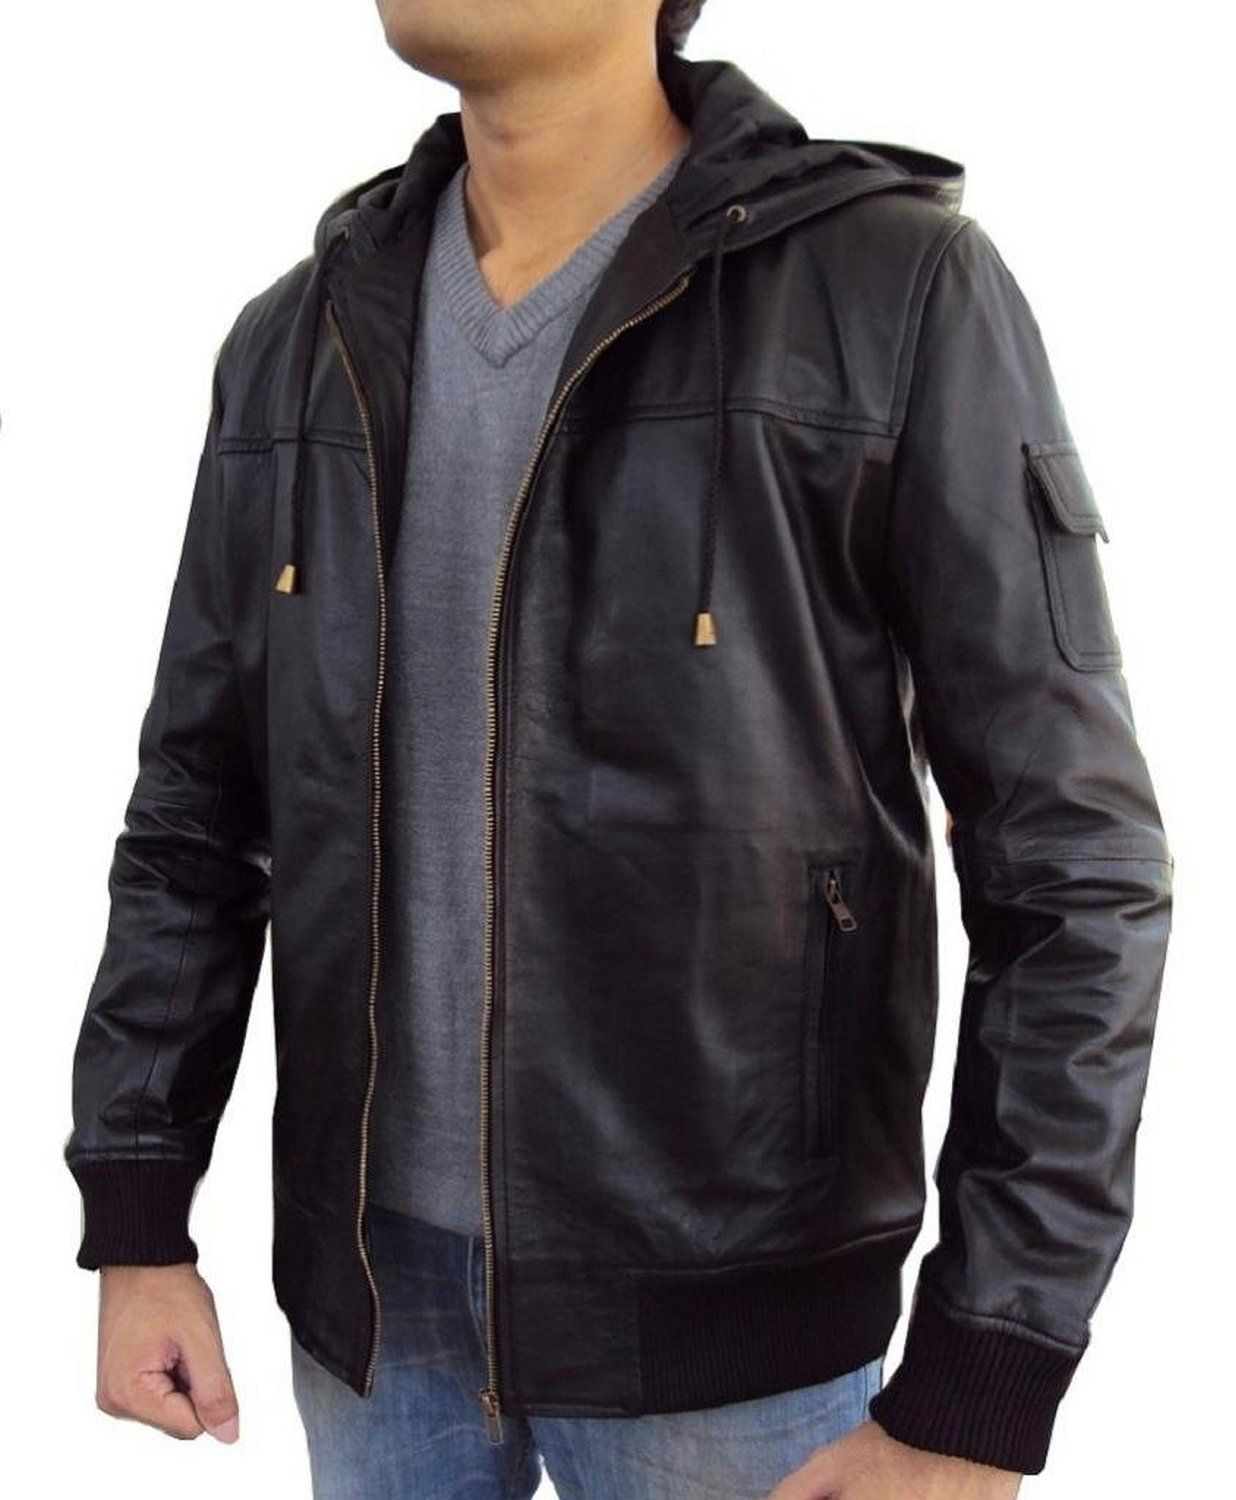 3265f90ce The Leather Factory Men's Lambskin Leather Fixed Hoodie Jacket with ...